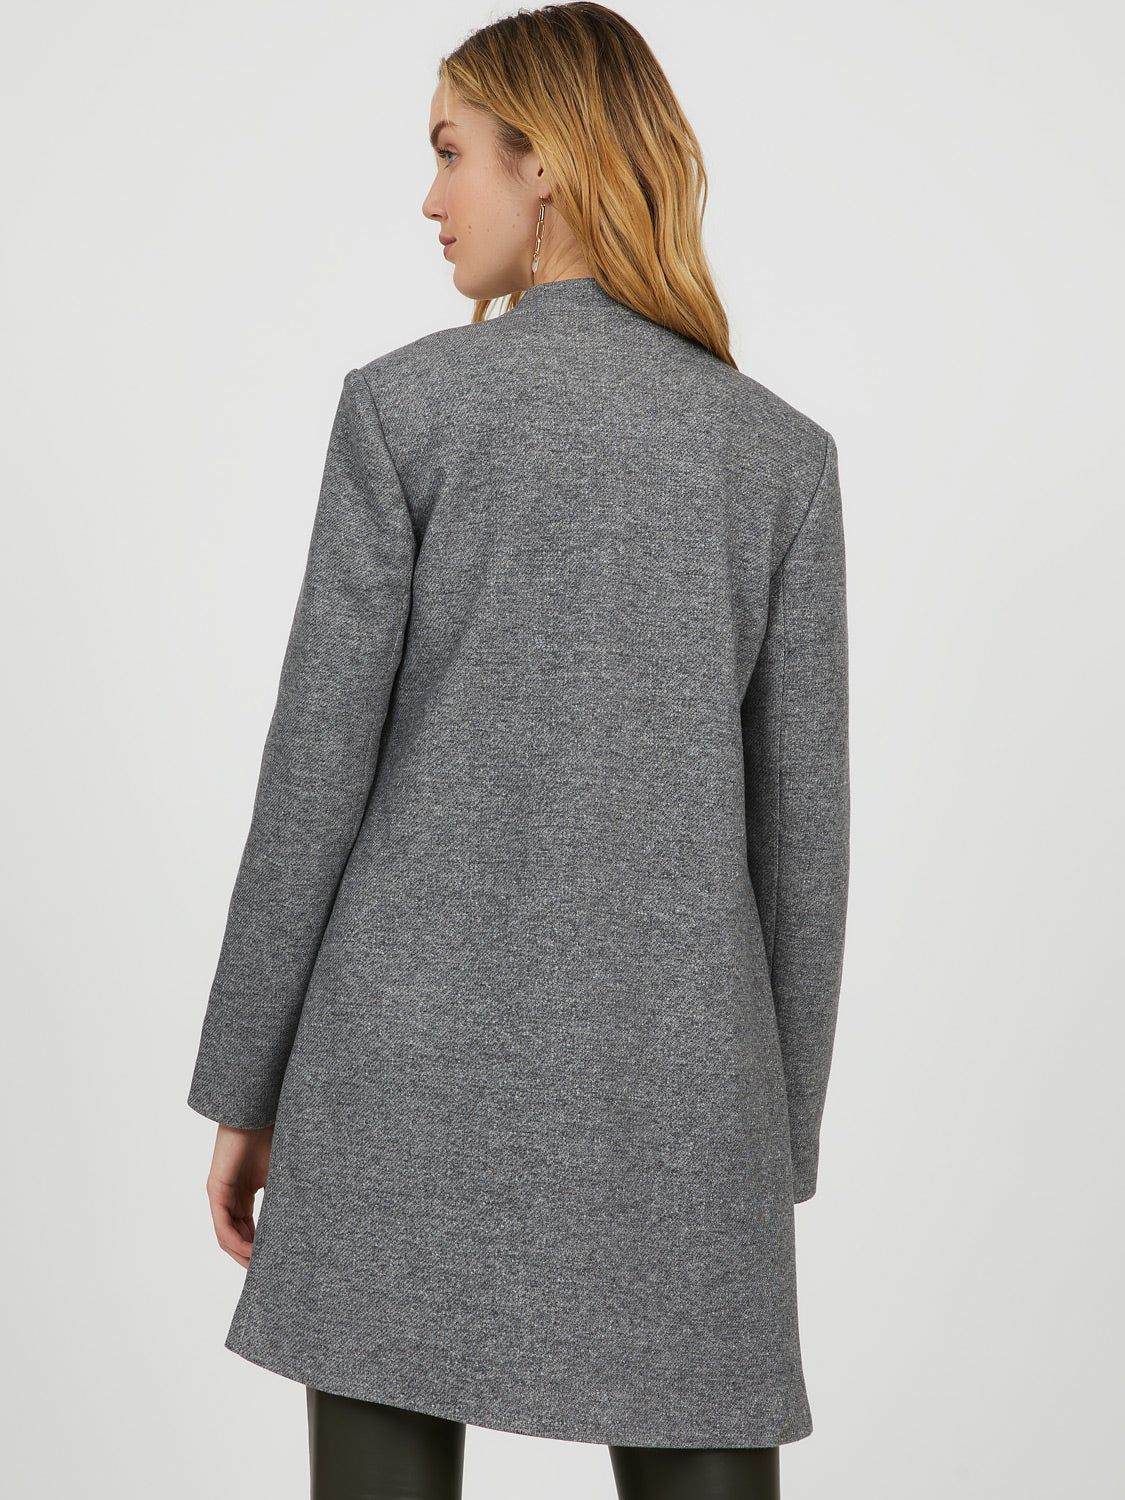 Notch Collar Fleece Car Coat